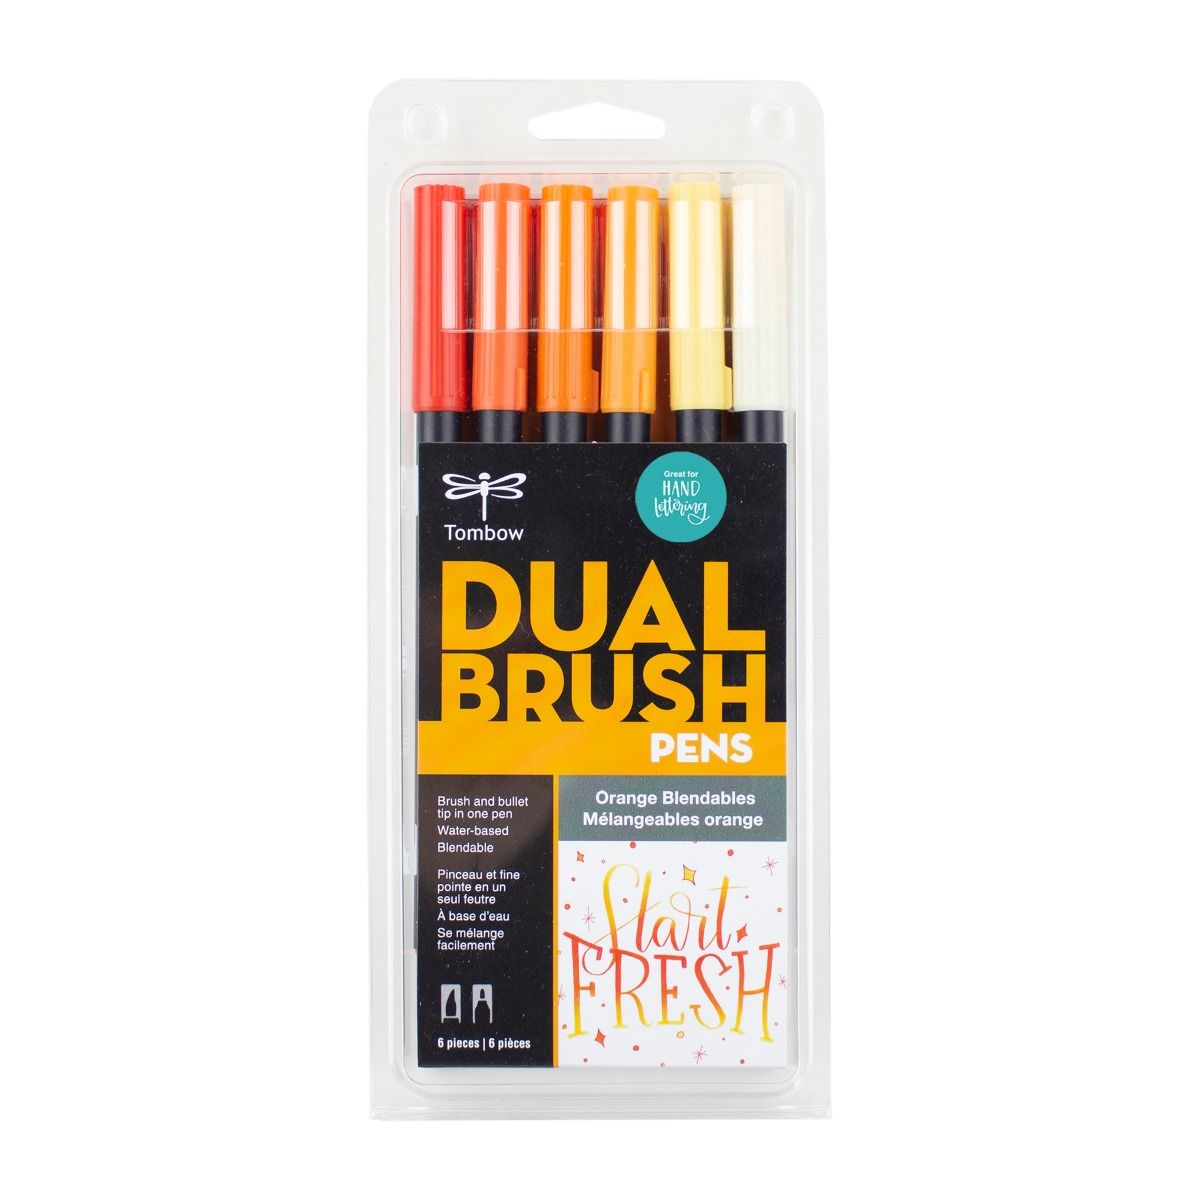 Orange Blendables 6-Pack - Dual Brush Pens